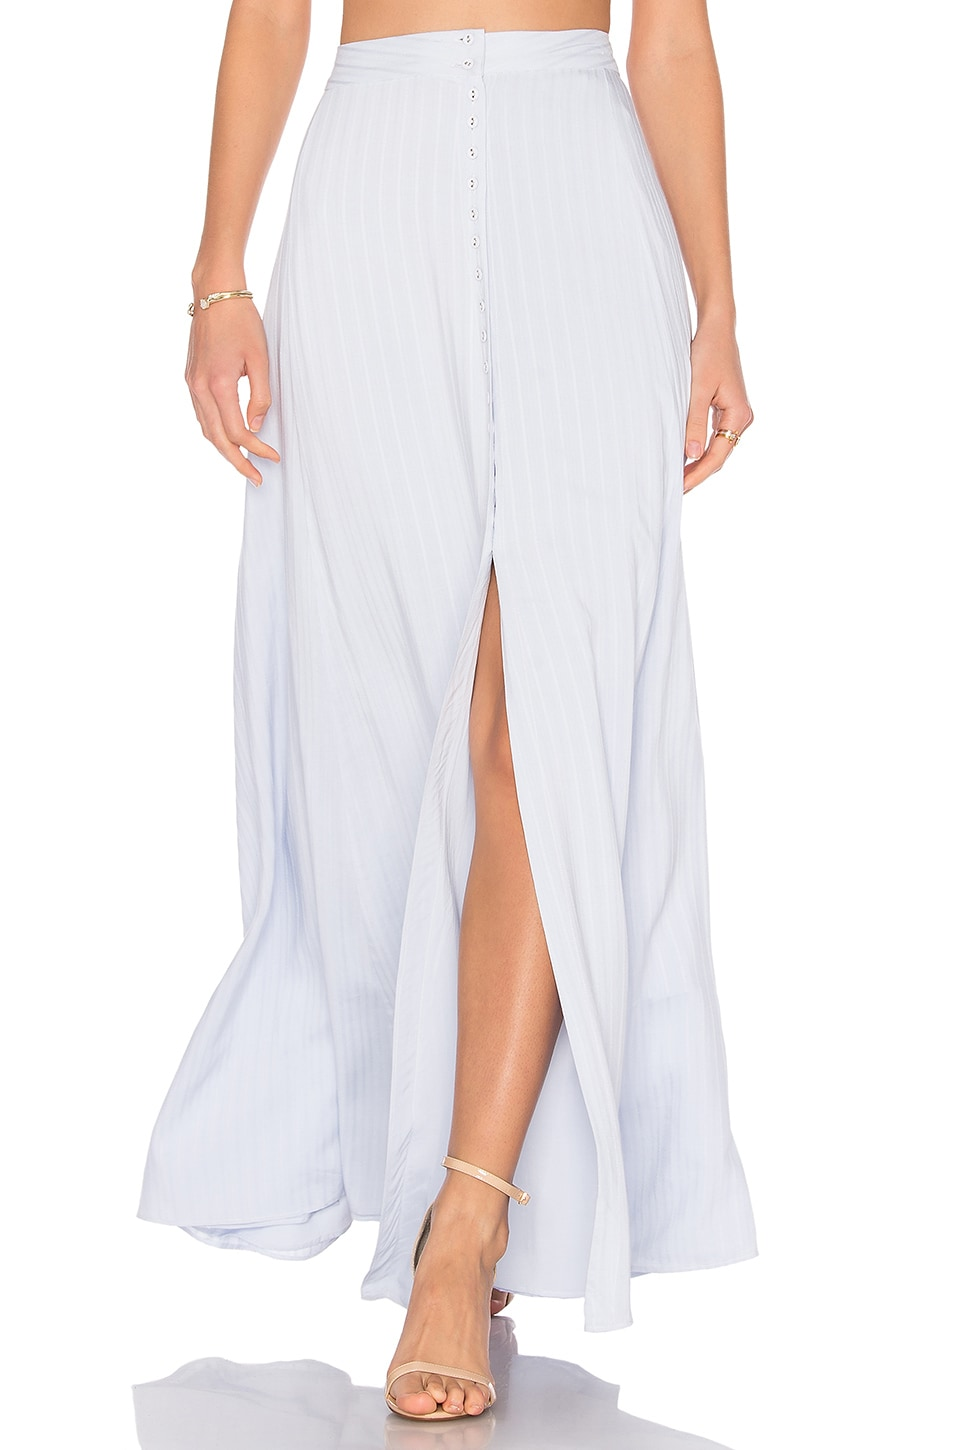 MAJORELLE Sangria Maxi Skirt in Dusty Blue